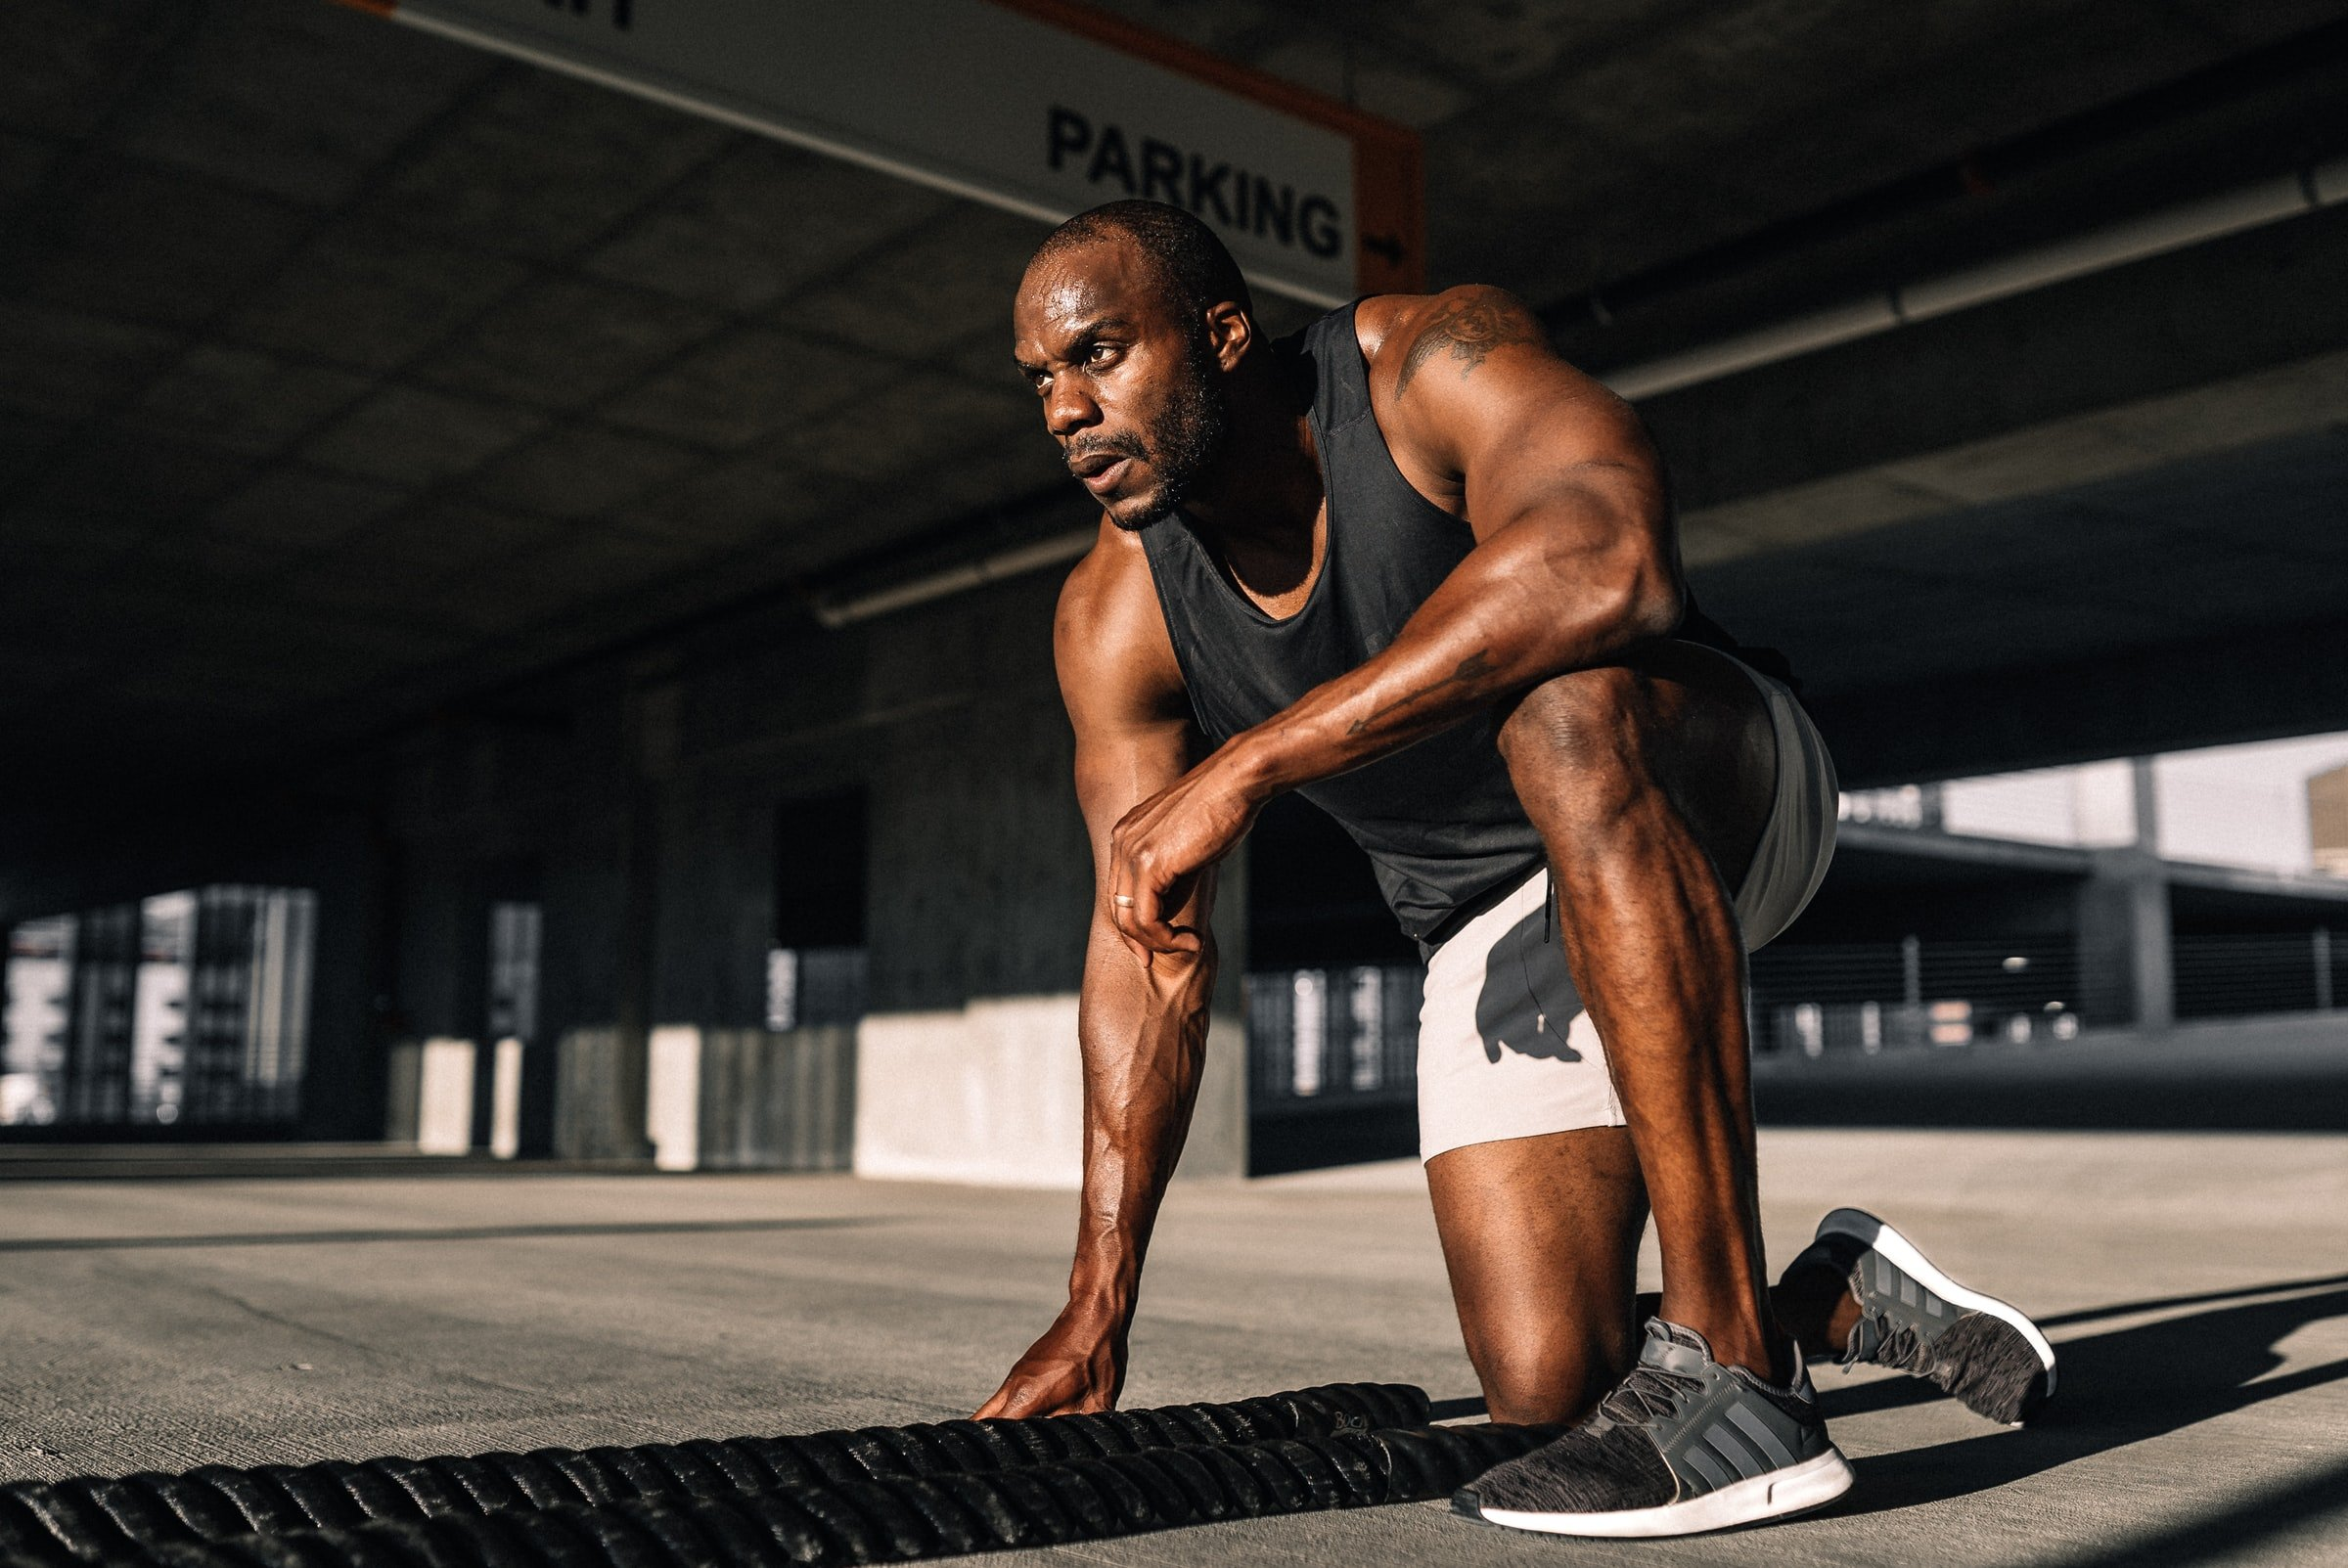 man resting while sweating while working out